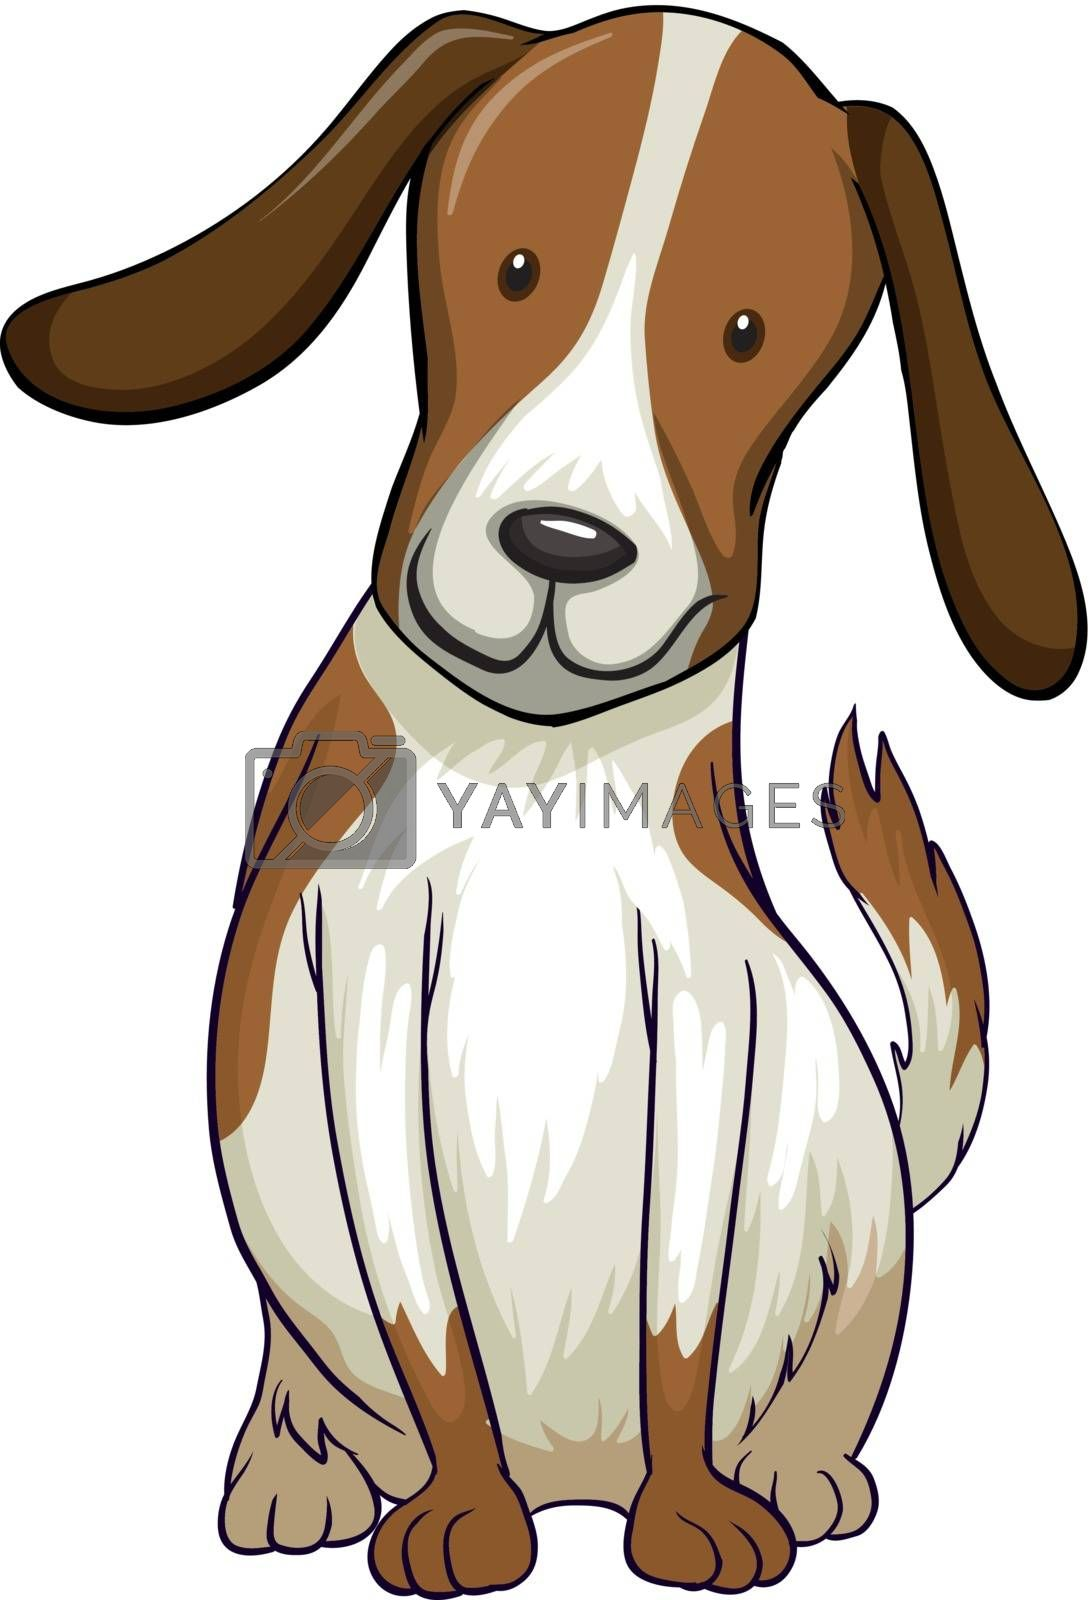 Illustration of a smiling dog on a white background